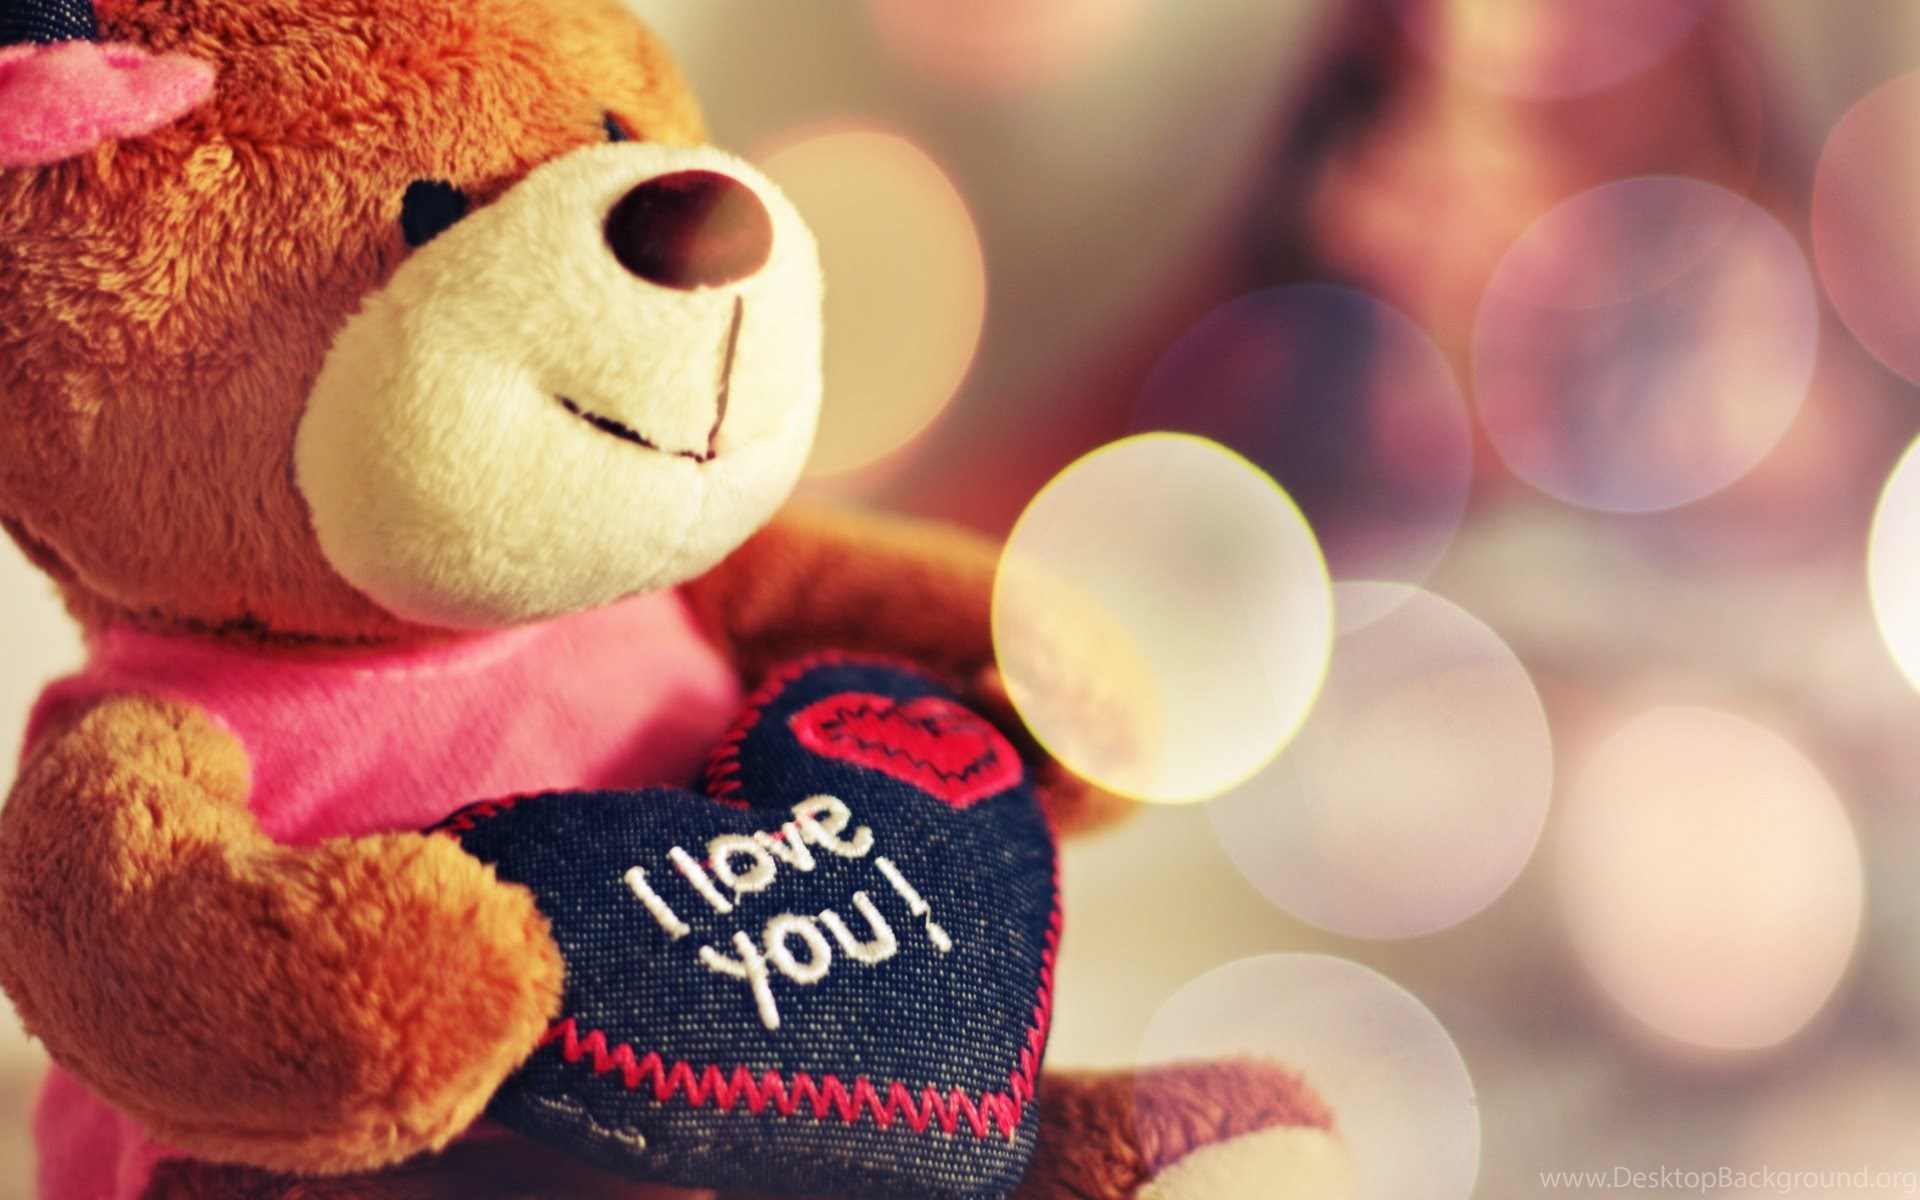 I love you teddy bear wallpapers desktop background widescreen thecheapjerseys Image collections